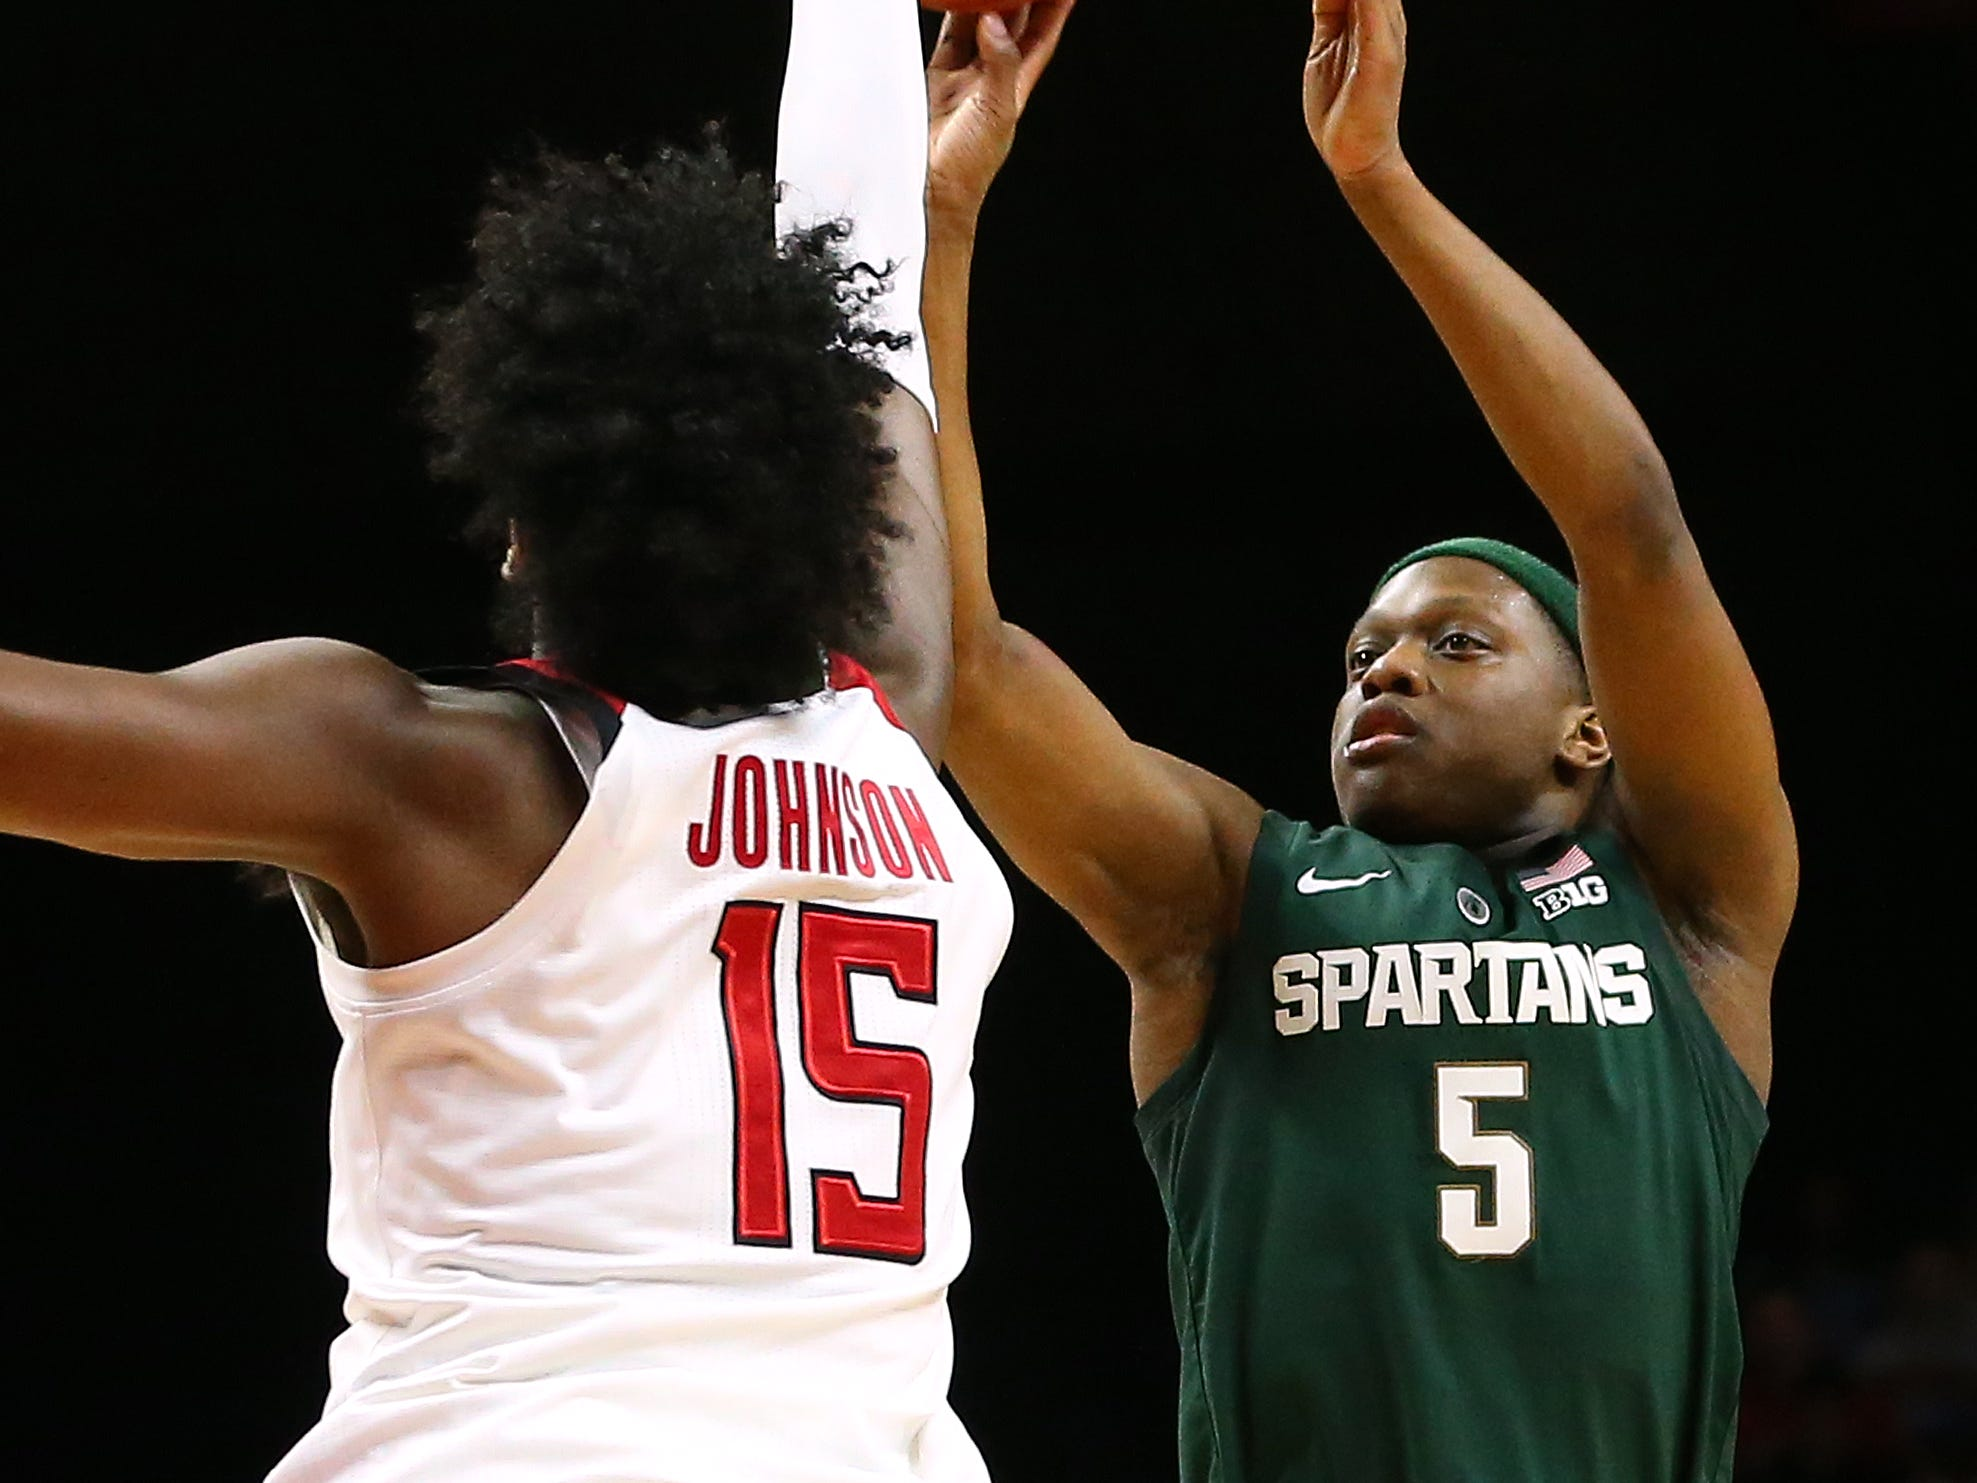 Cassius Winston #5 of the Michigan State Spartans attempts a shot as Myles Johnson #15 of the Rutgers Scarlet Knights defends during the first half of a college basketball game at the Rutgers Athletic Center on November 30, 2018 in Piscataway, New Jersey.